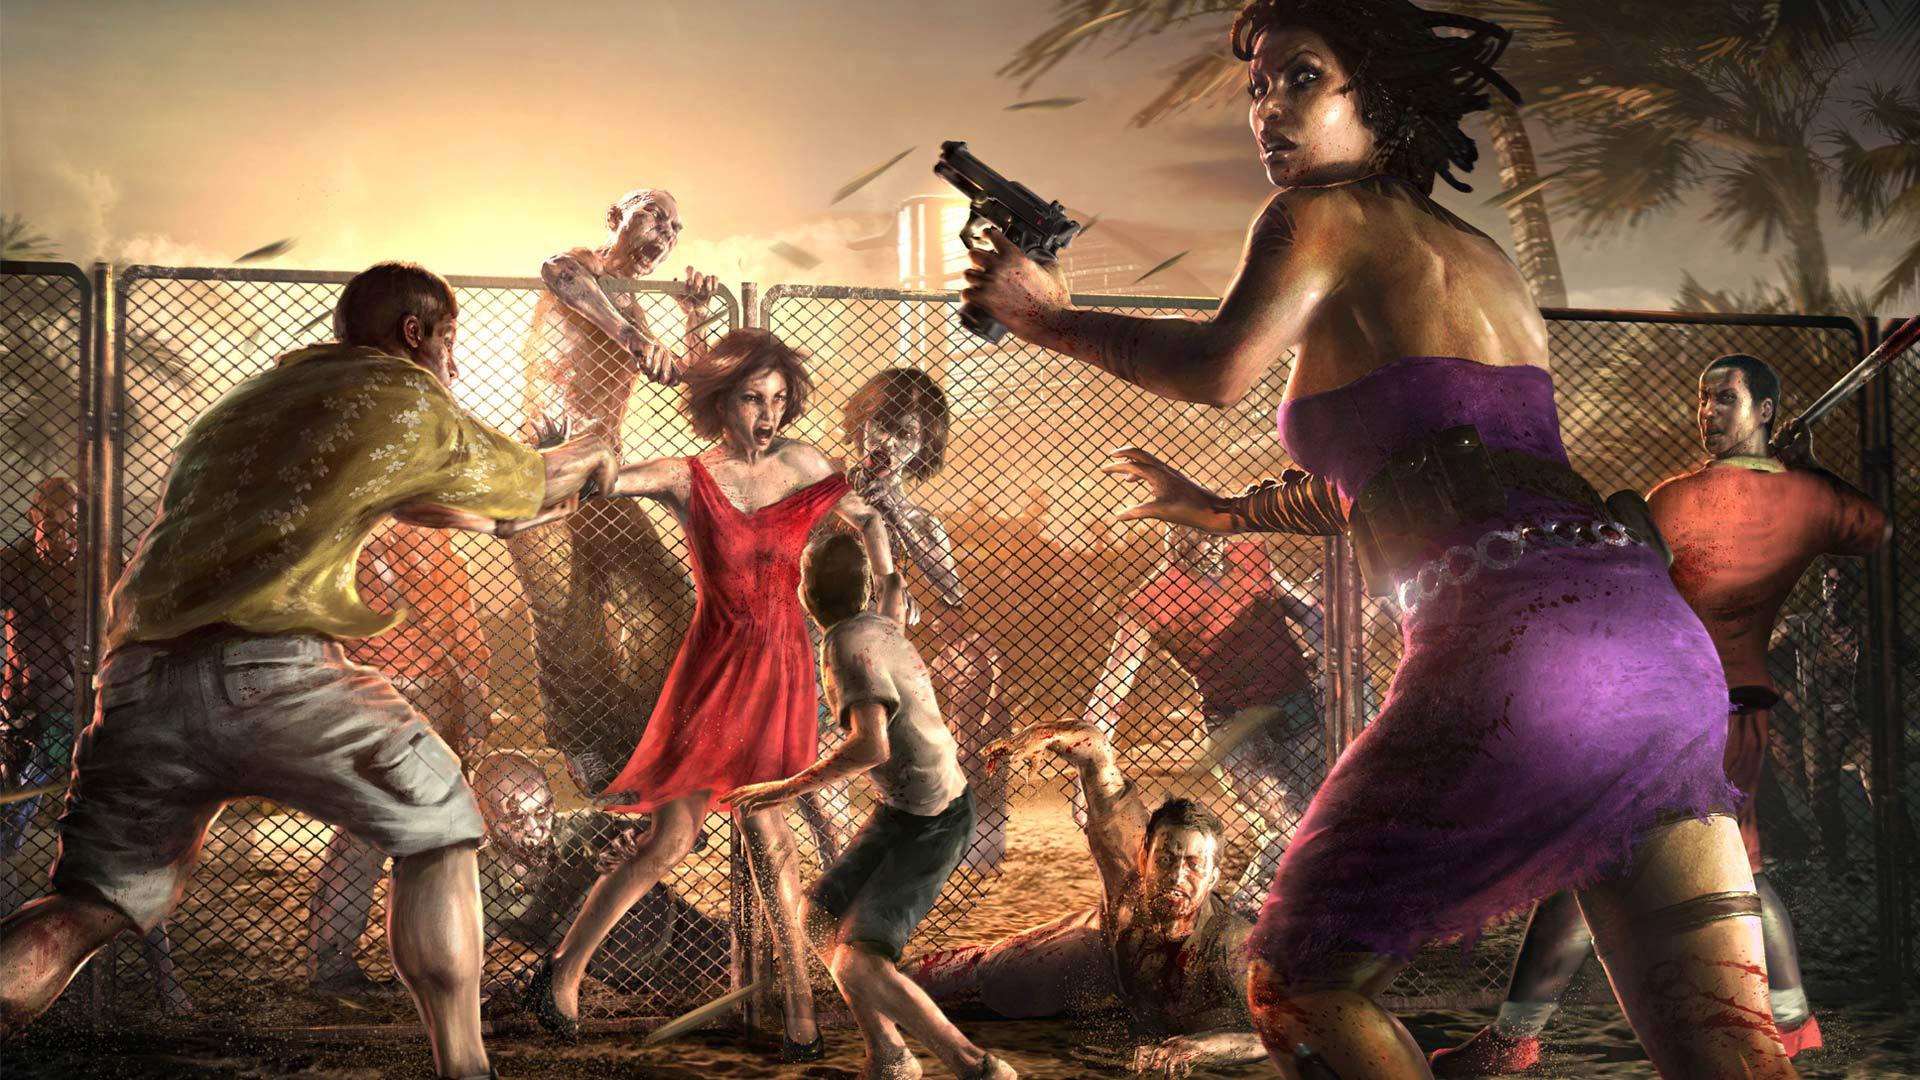 Free Dead Island Wallpaper in 1920x1080